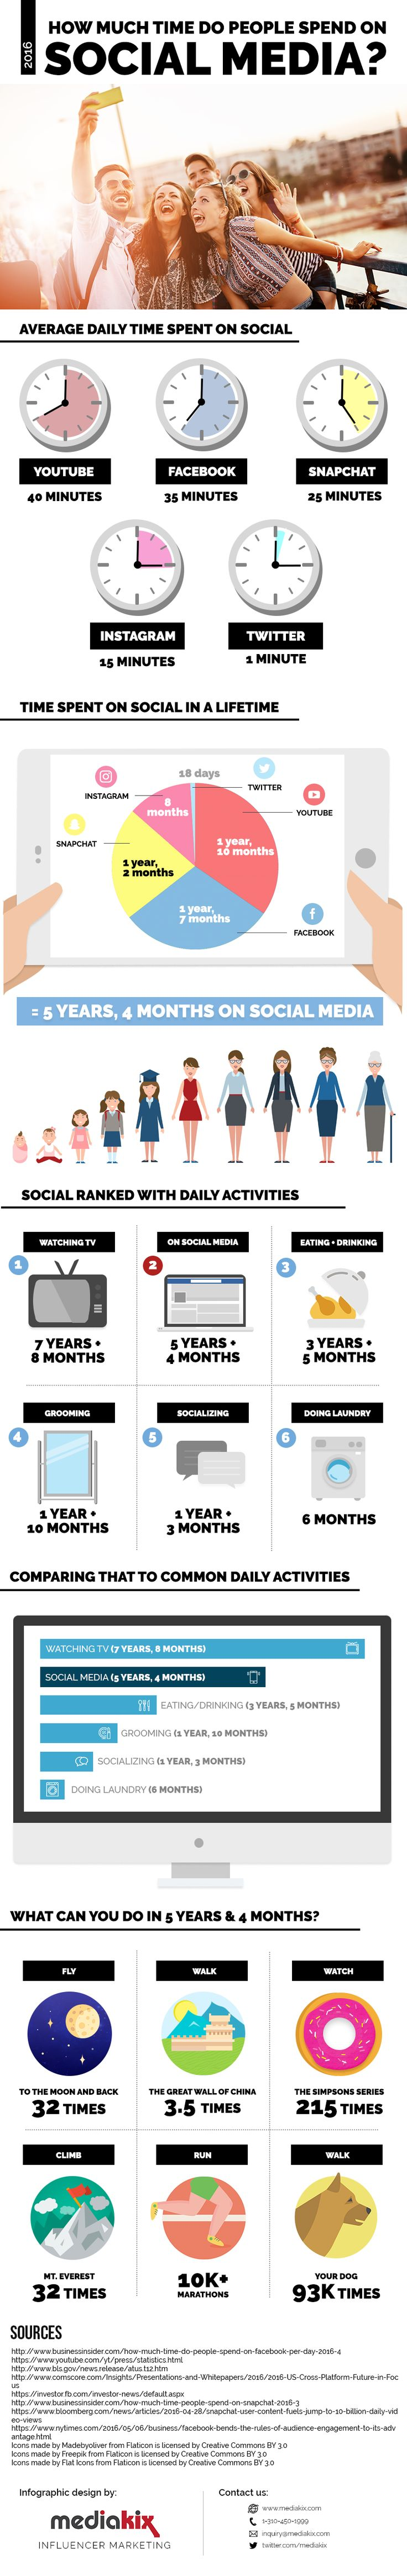 How Much Time Do We Spend on Social Media In Our Lives? (infographic)